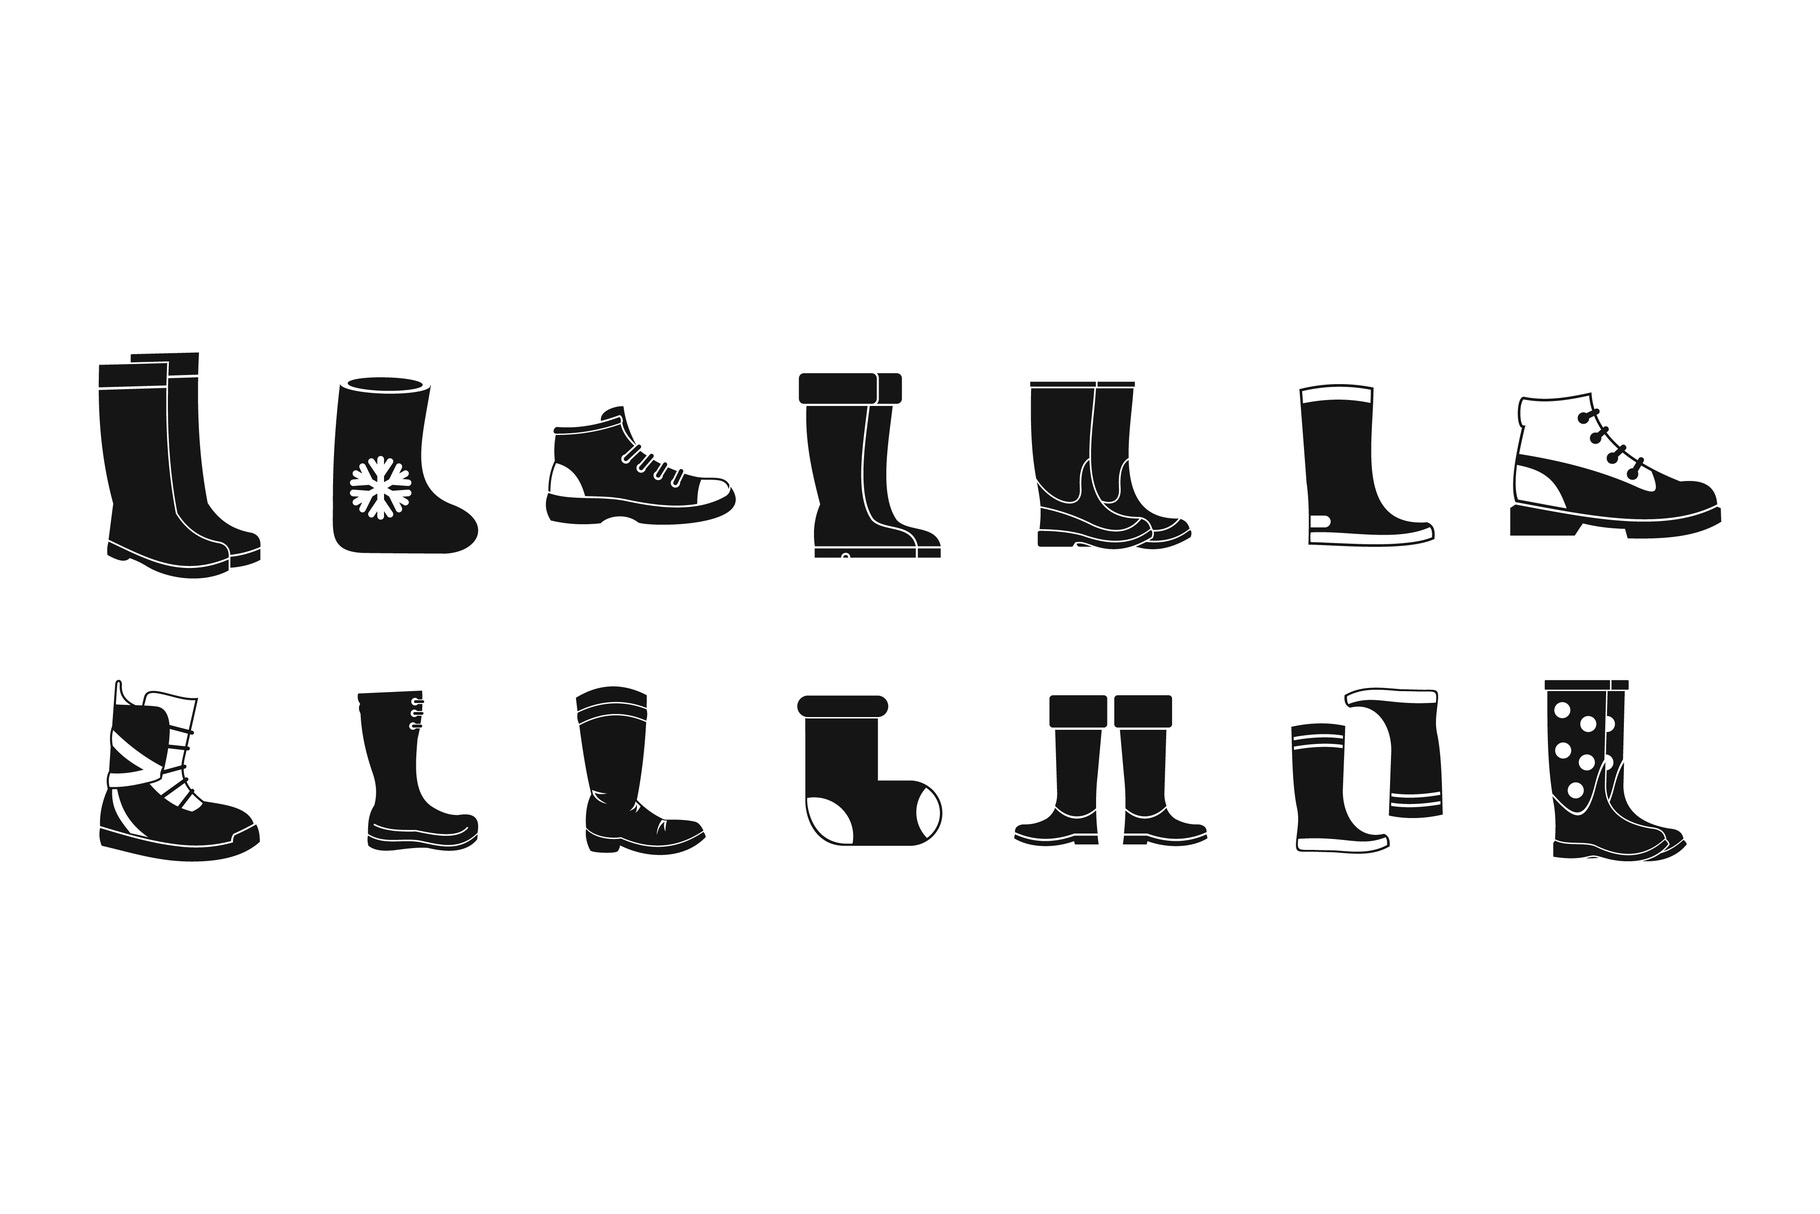 Boots icon set, simple style example image 1